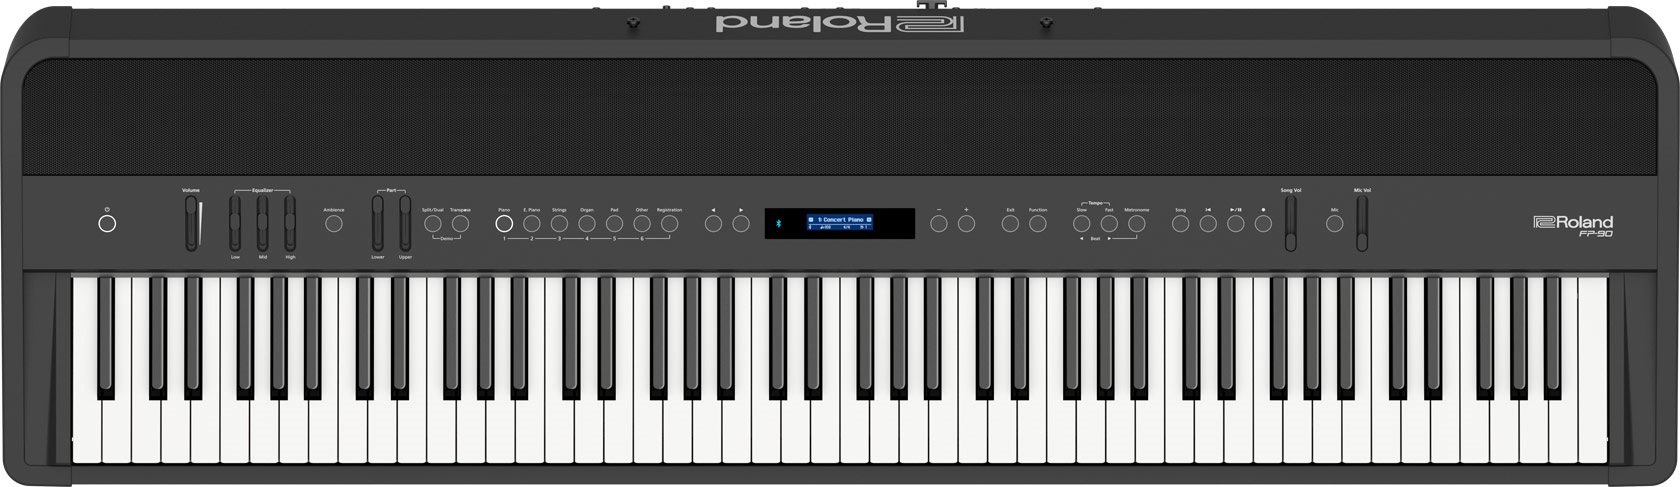 Roland Fp 90 Premium Portable Digital Piano Pro Package